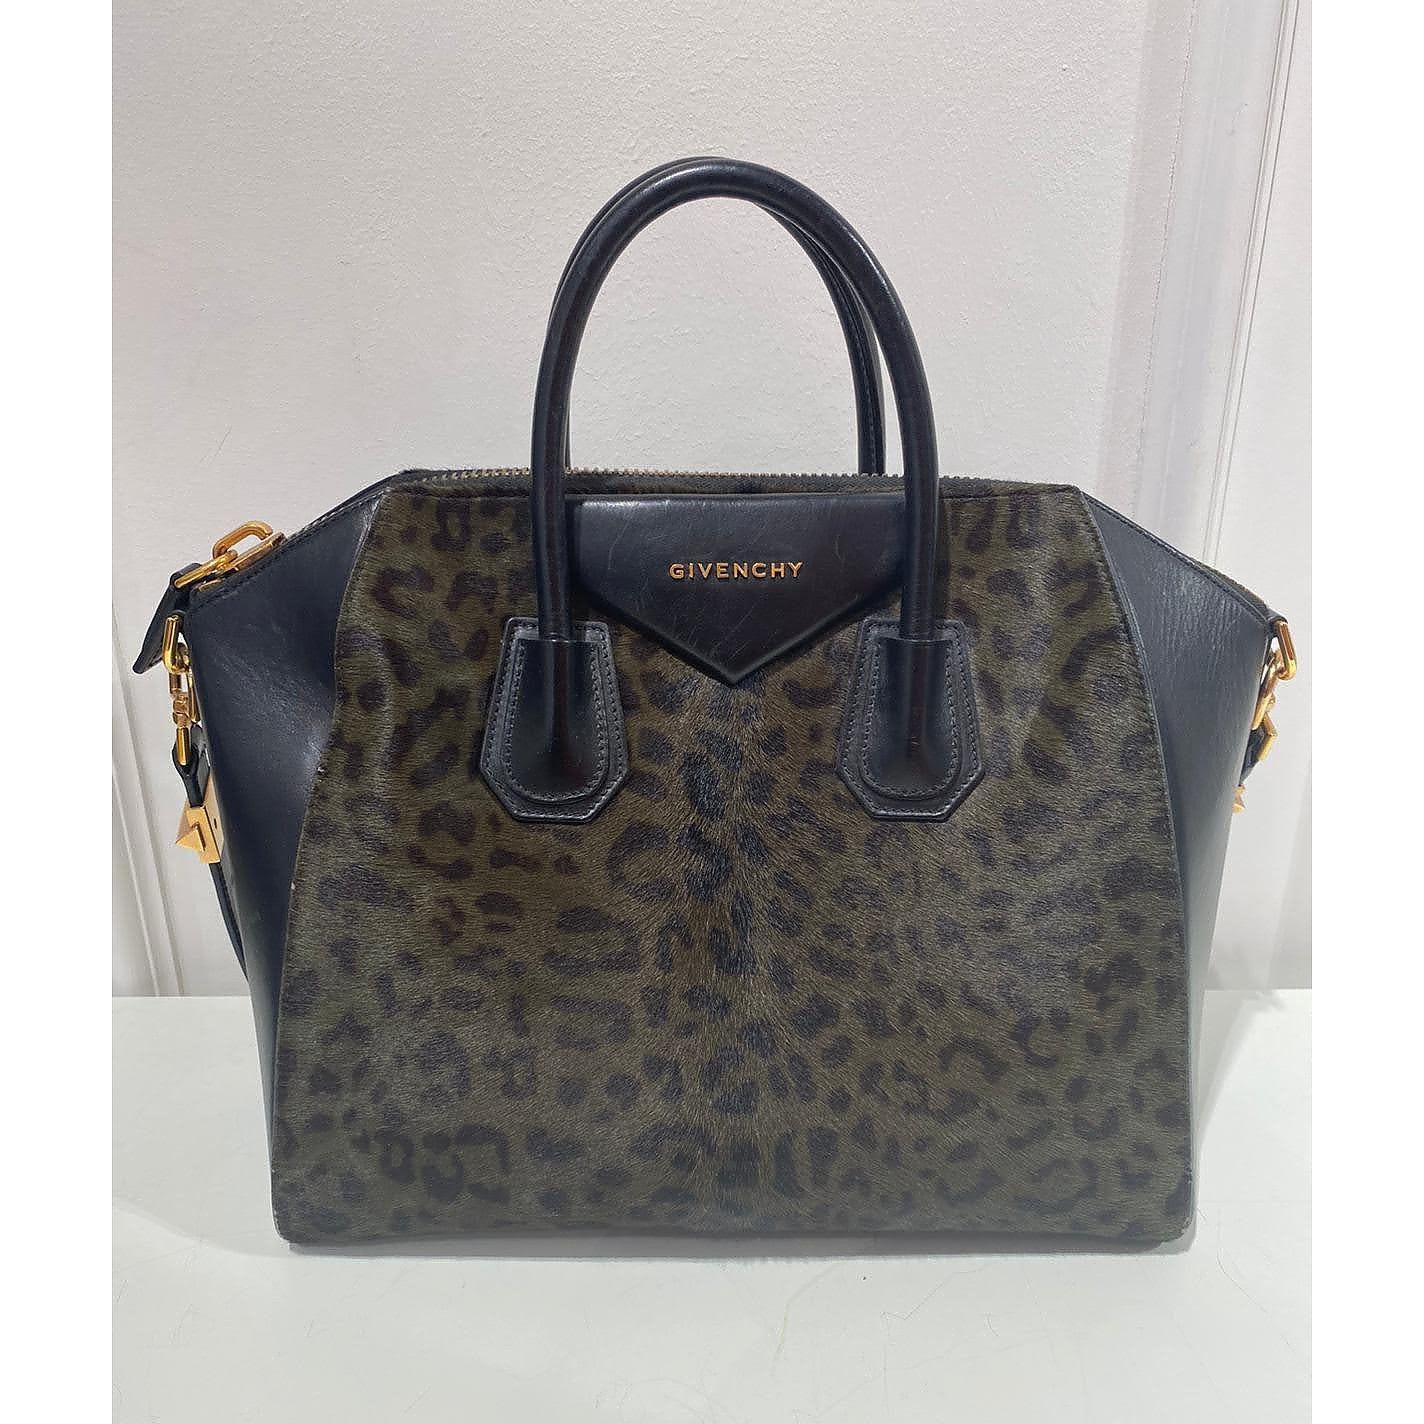 Givenchy Leopard Tote Bag